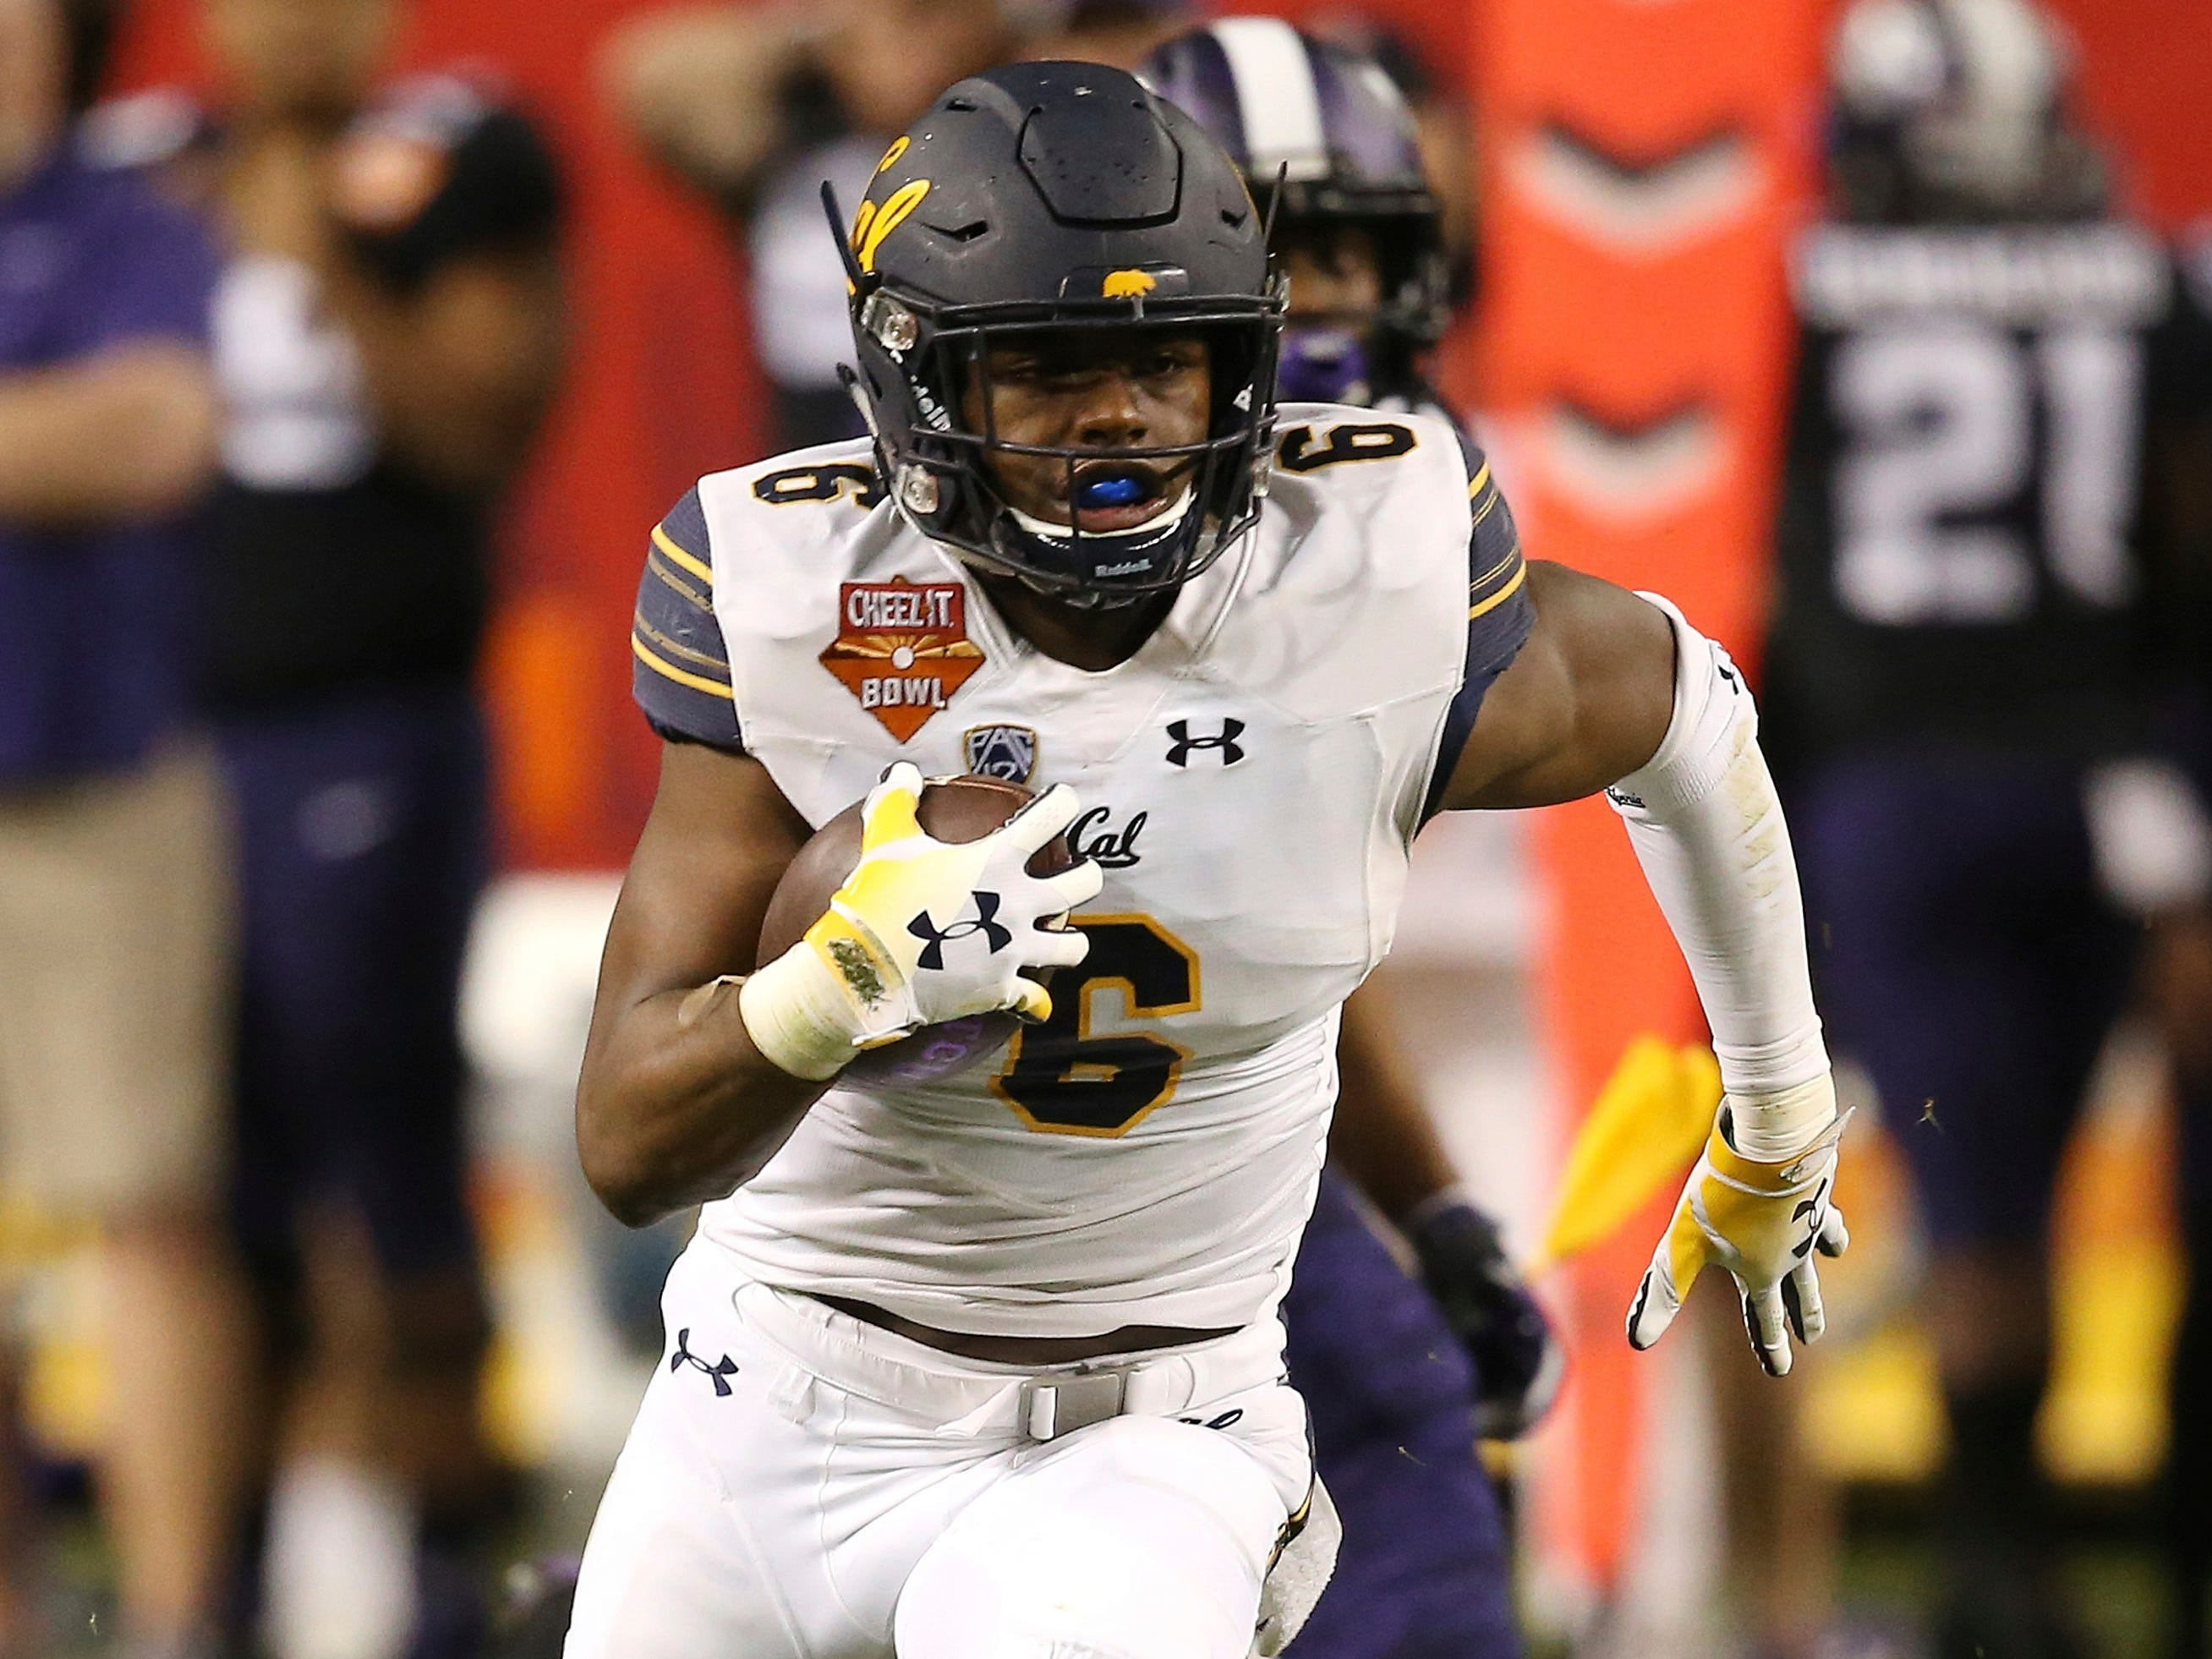 California safety Jaylinn Hawkins runs with the ball after intercepting a TCU pass during the first half of the Cheez-It Bowl NCAA college football game Wednesday, Dec. 26, 2018, in Phoenix.